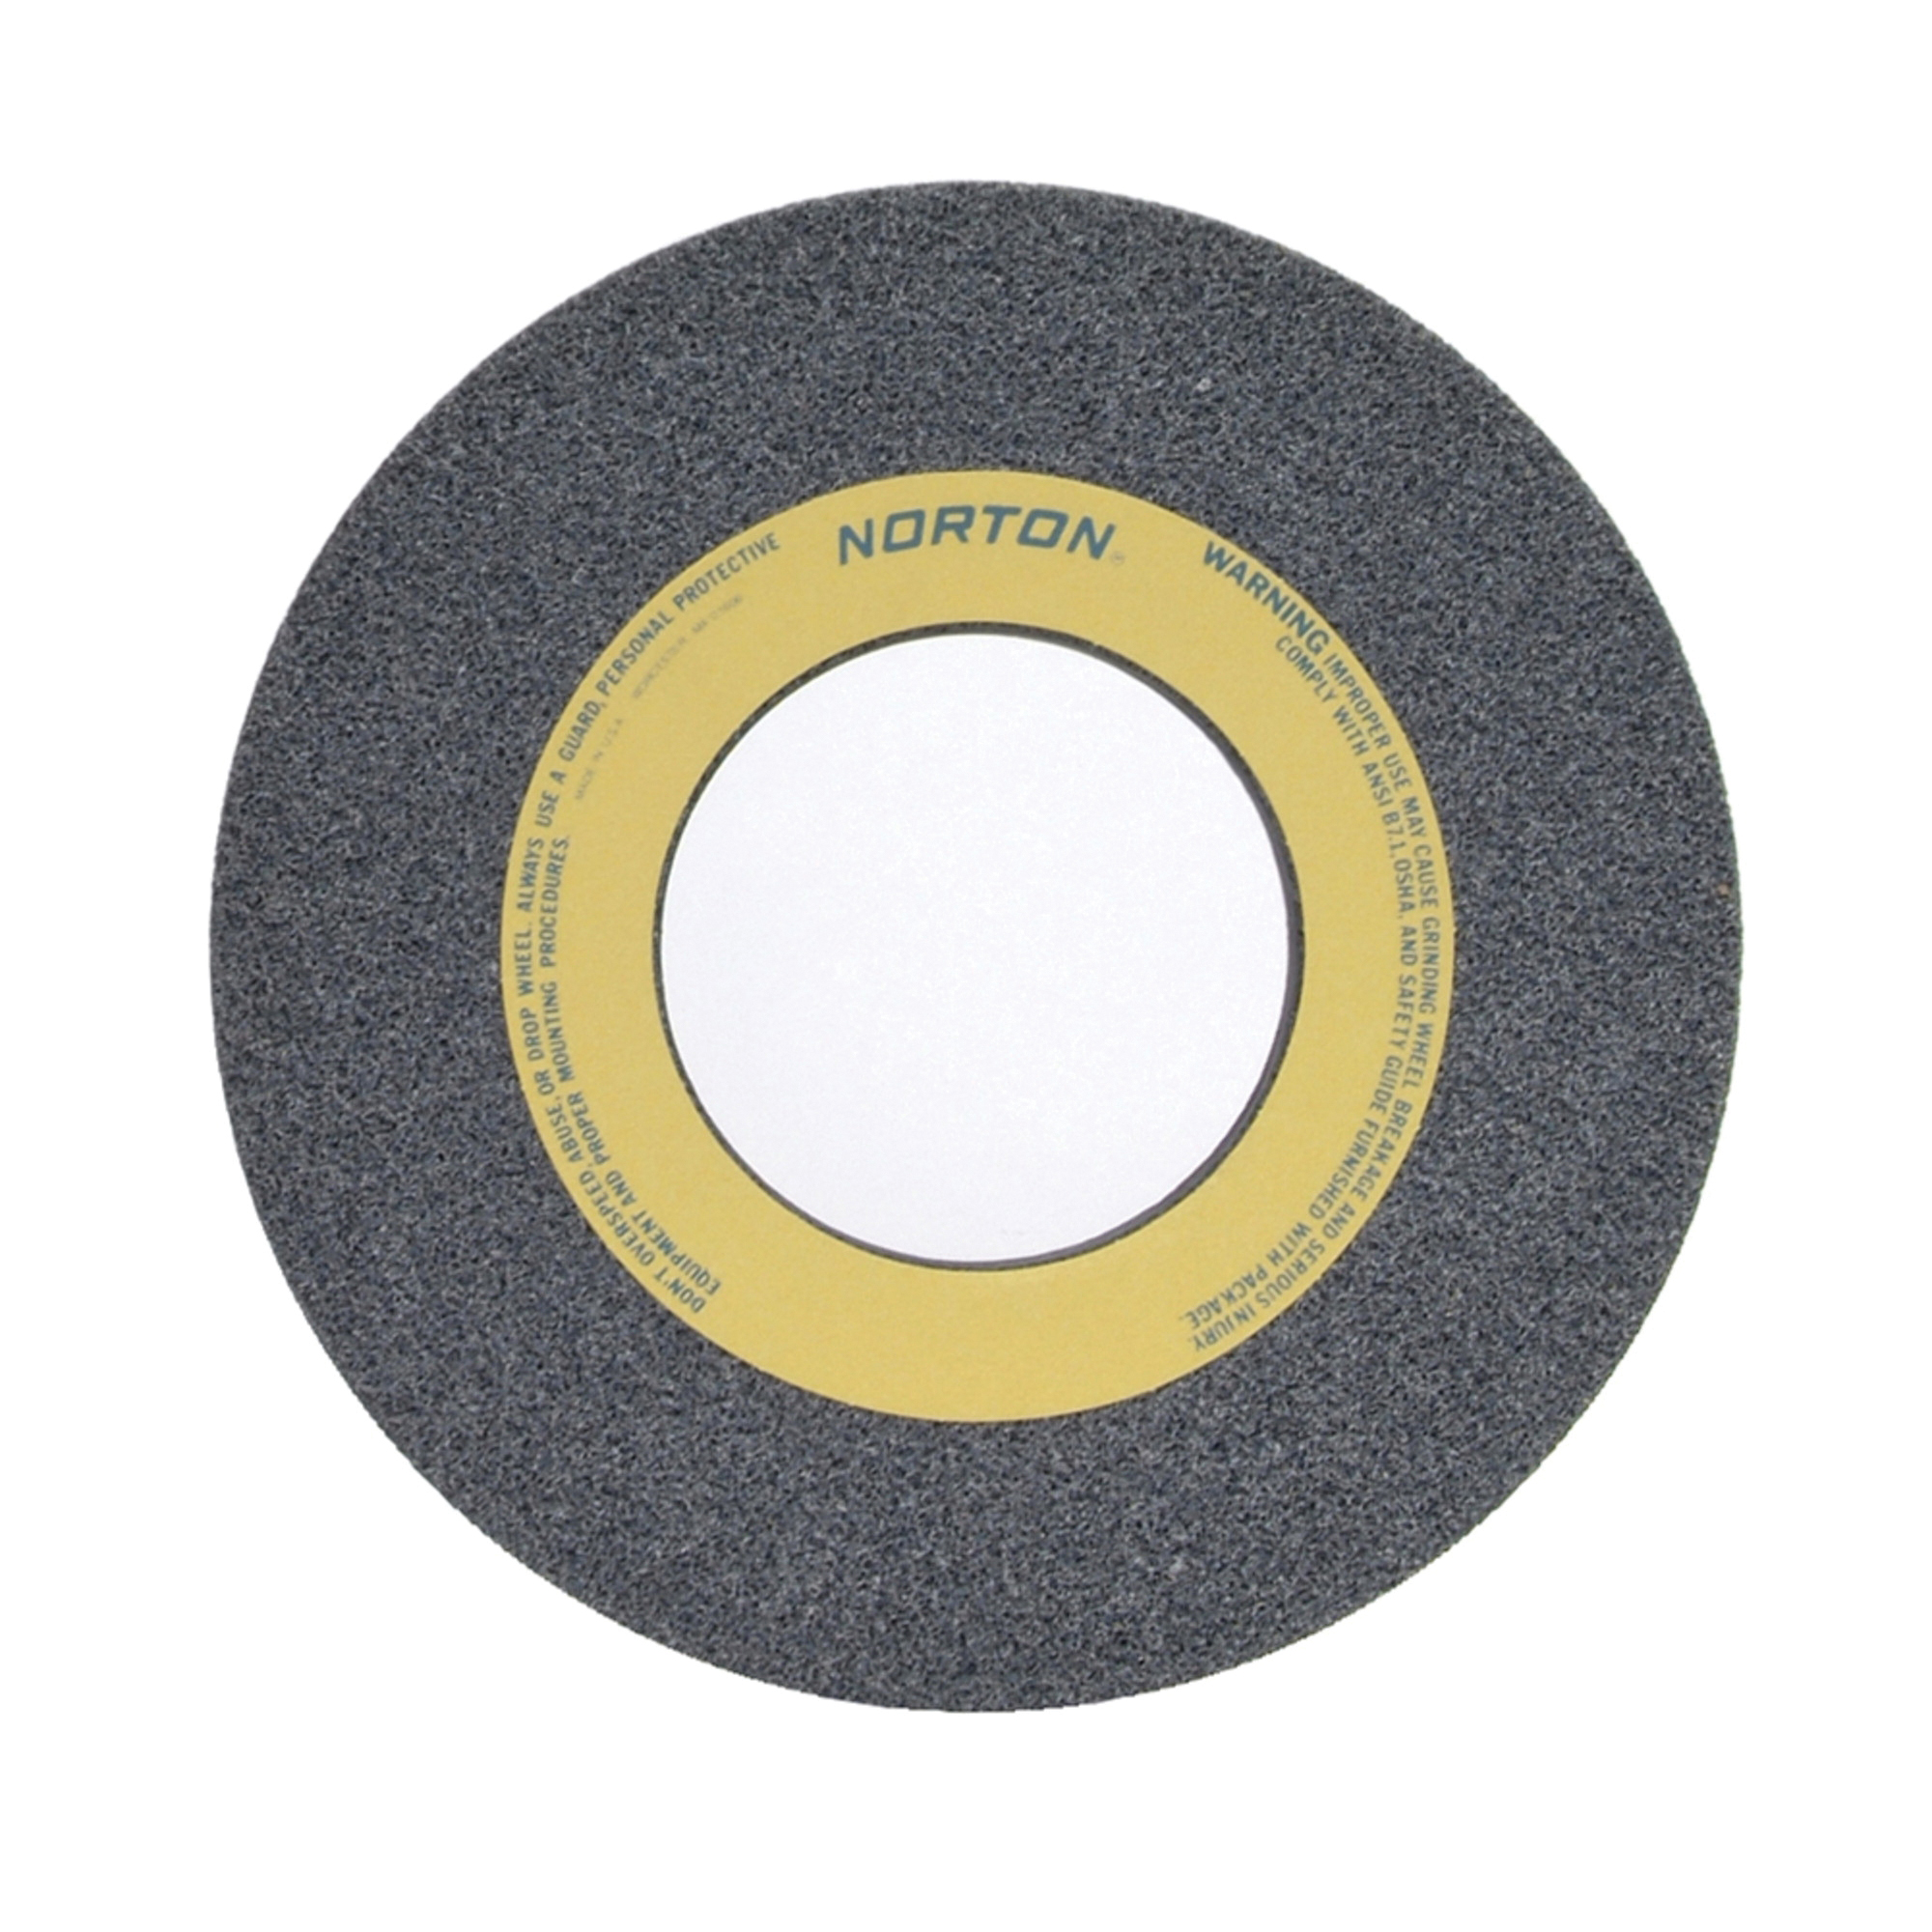 Norton® 66253364510 32A Straight Toolroom Wheel, 14 in Dia x 2 in THK, 5 in Center Hole, 60 Grit, Aluminum Oxide Abrasive